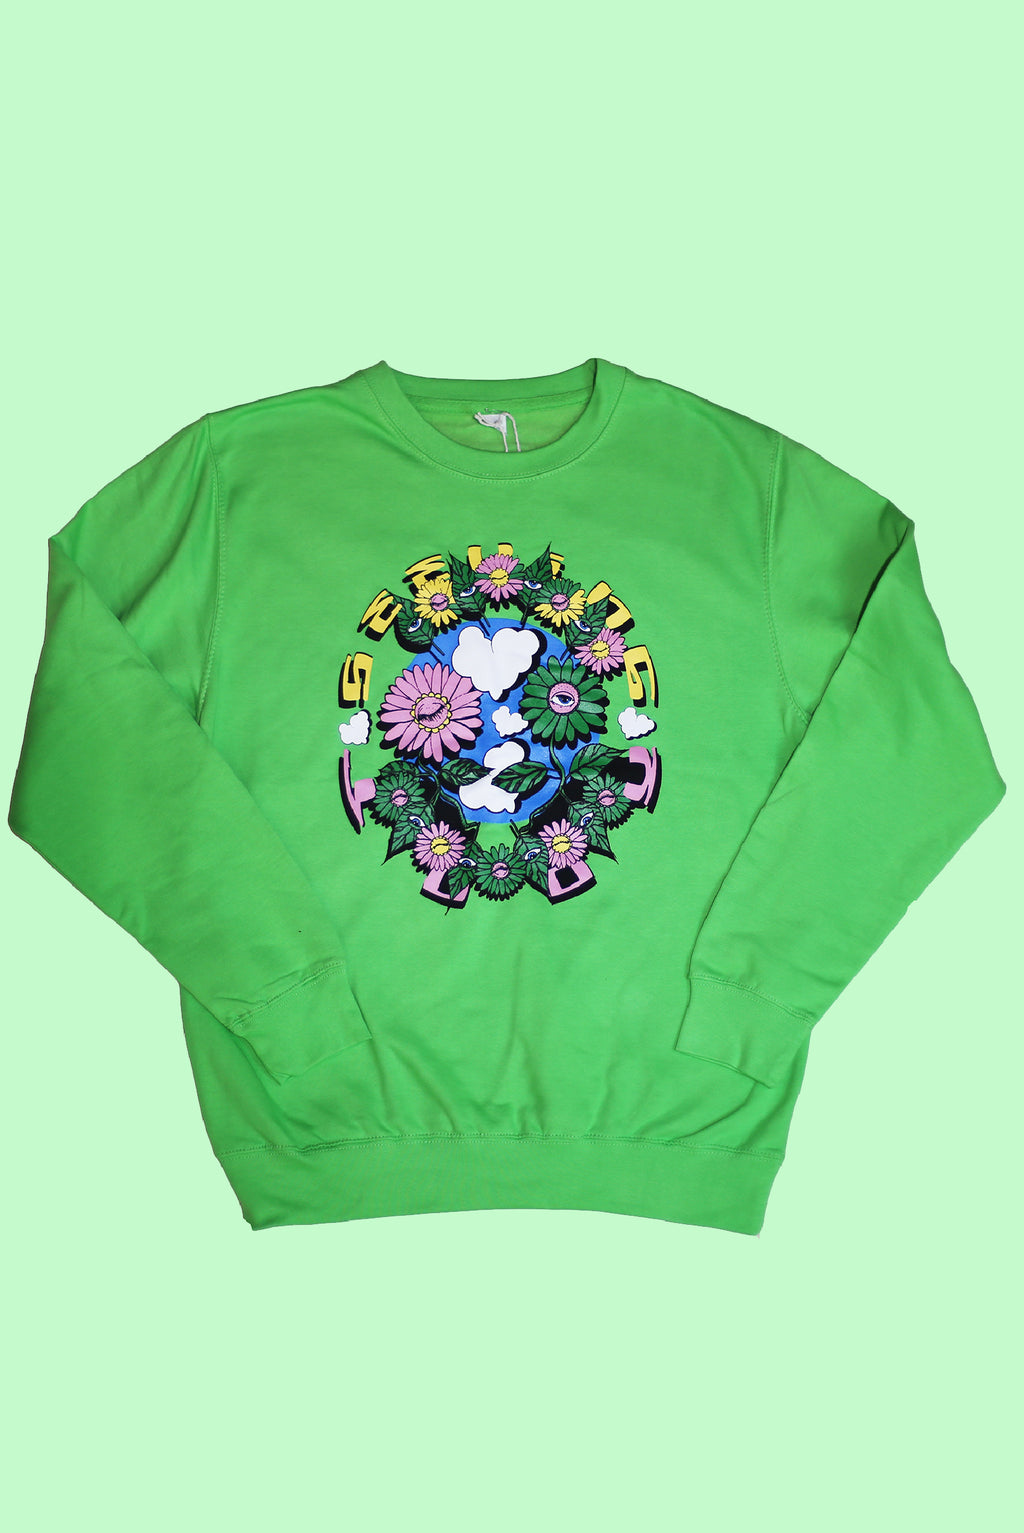 'Plant Friends' Green sweatshirt